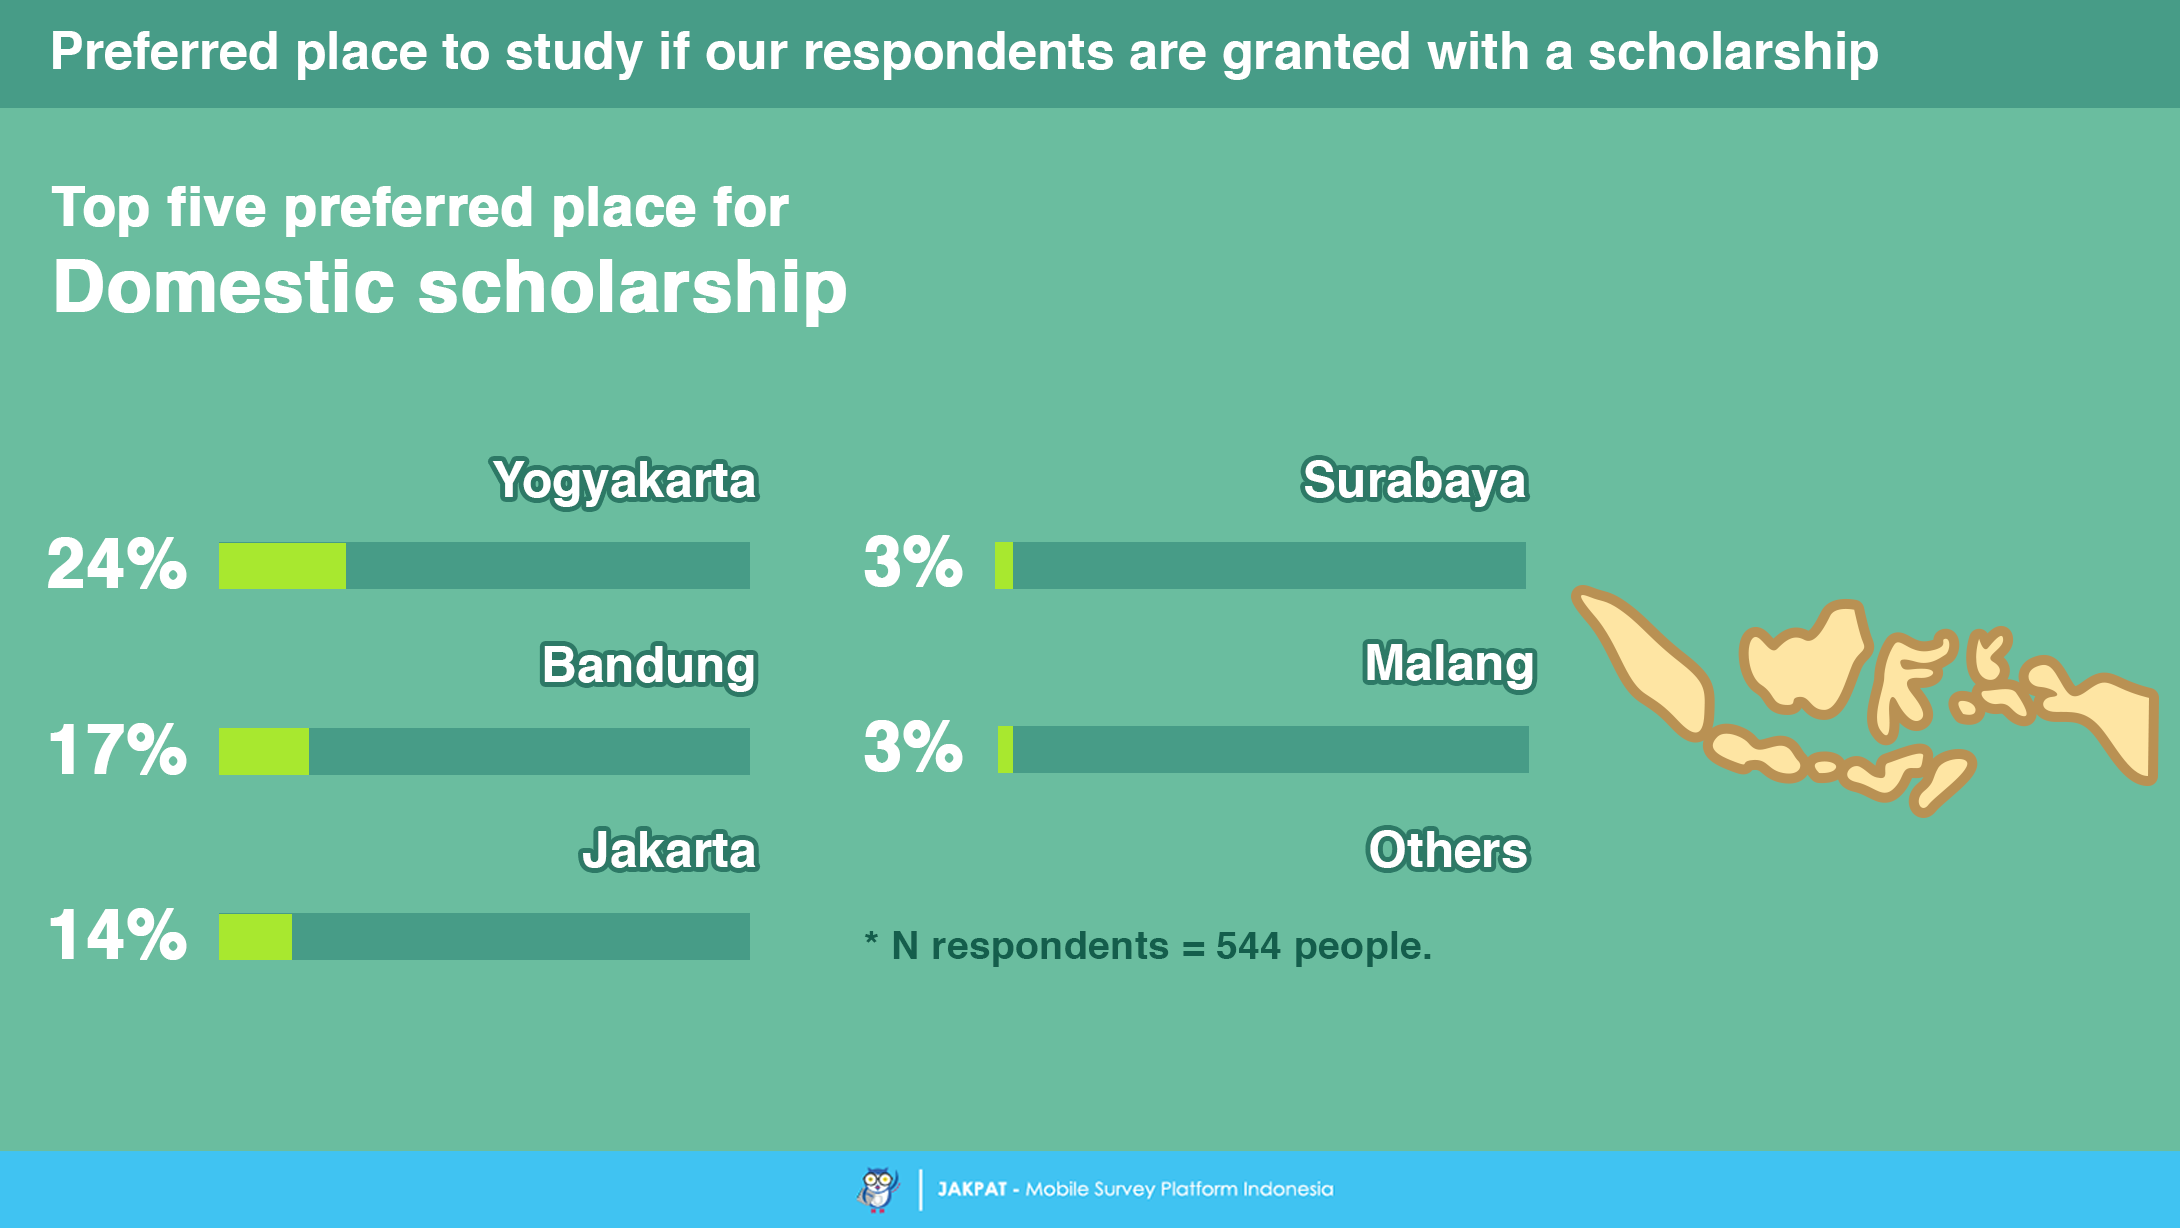 Not very well known scholarships?